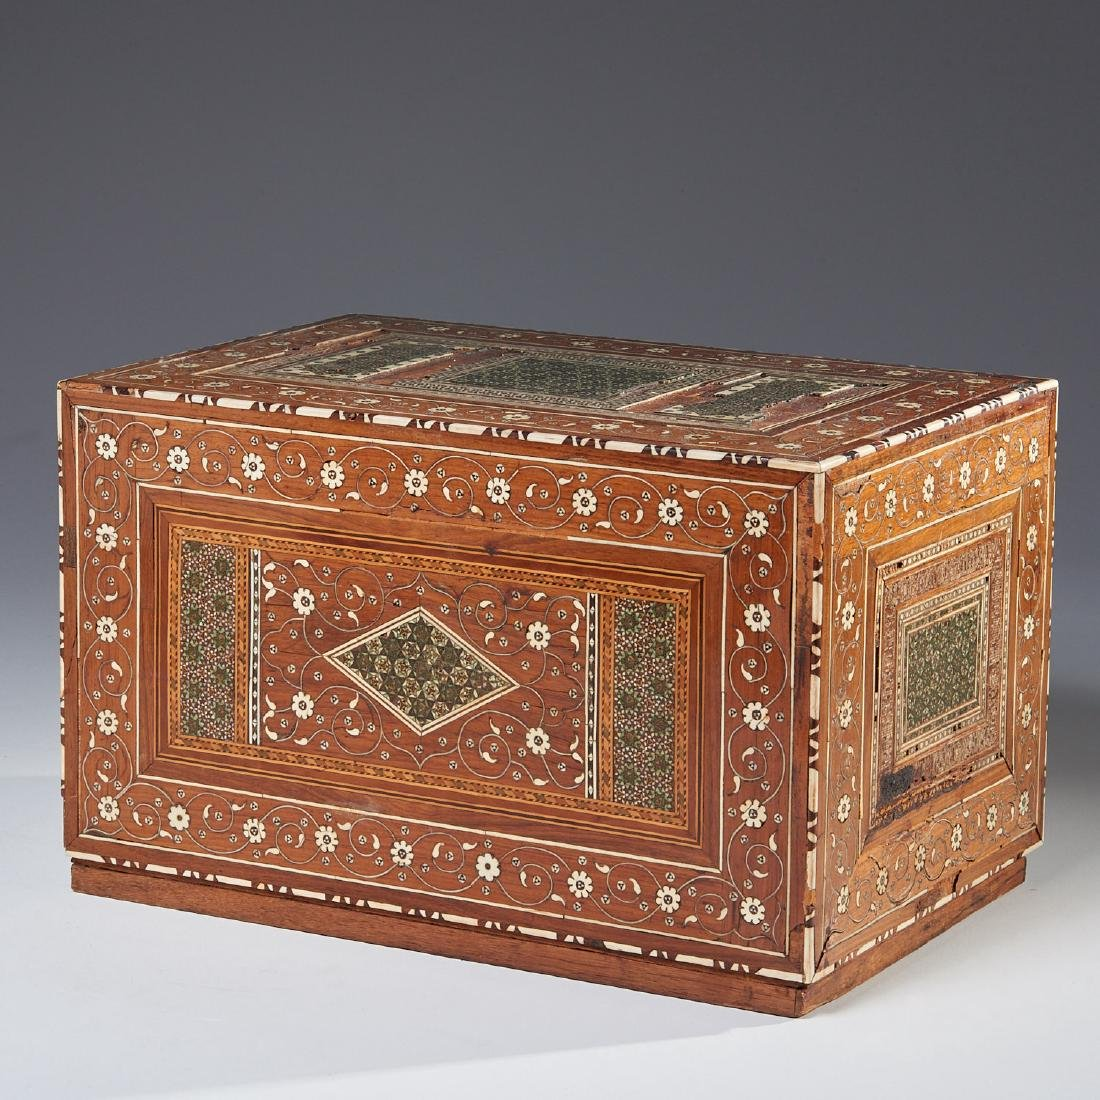 Damascus inlaid tabletop chest of drawers - 8